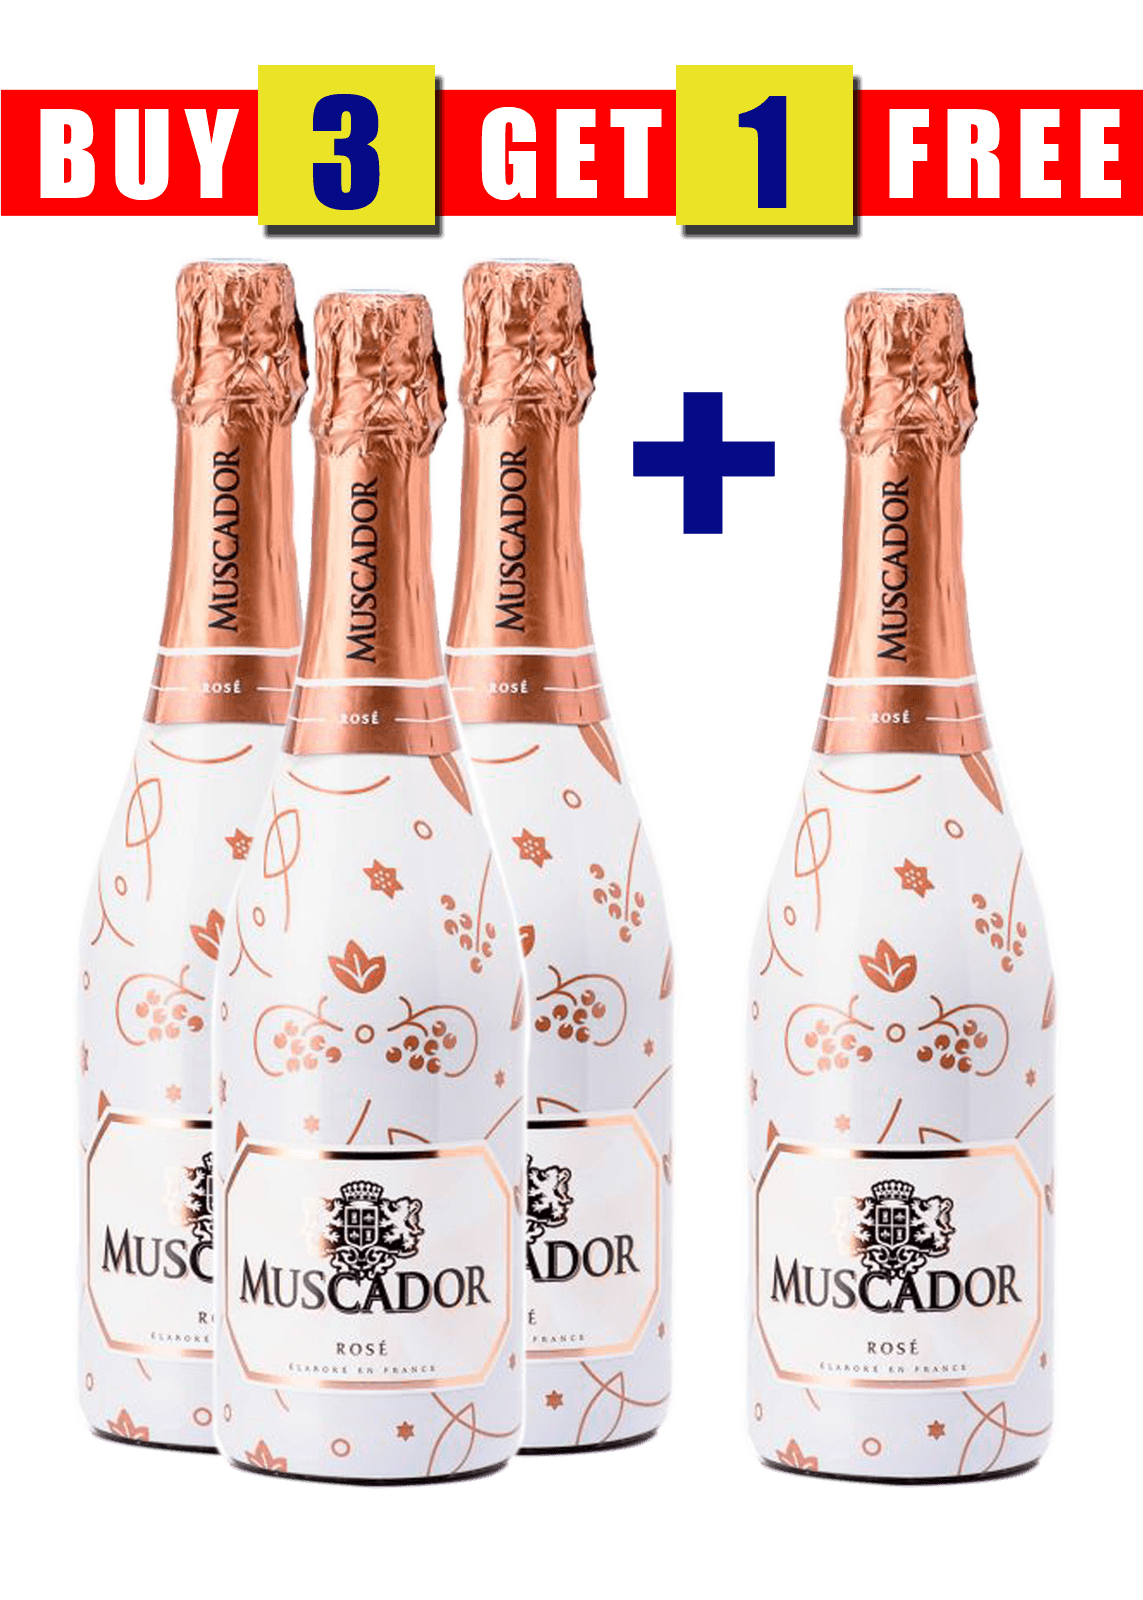 MUSCADOR ICE ROSE 75CL (BUY 3 GET 1 FREE)